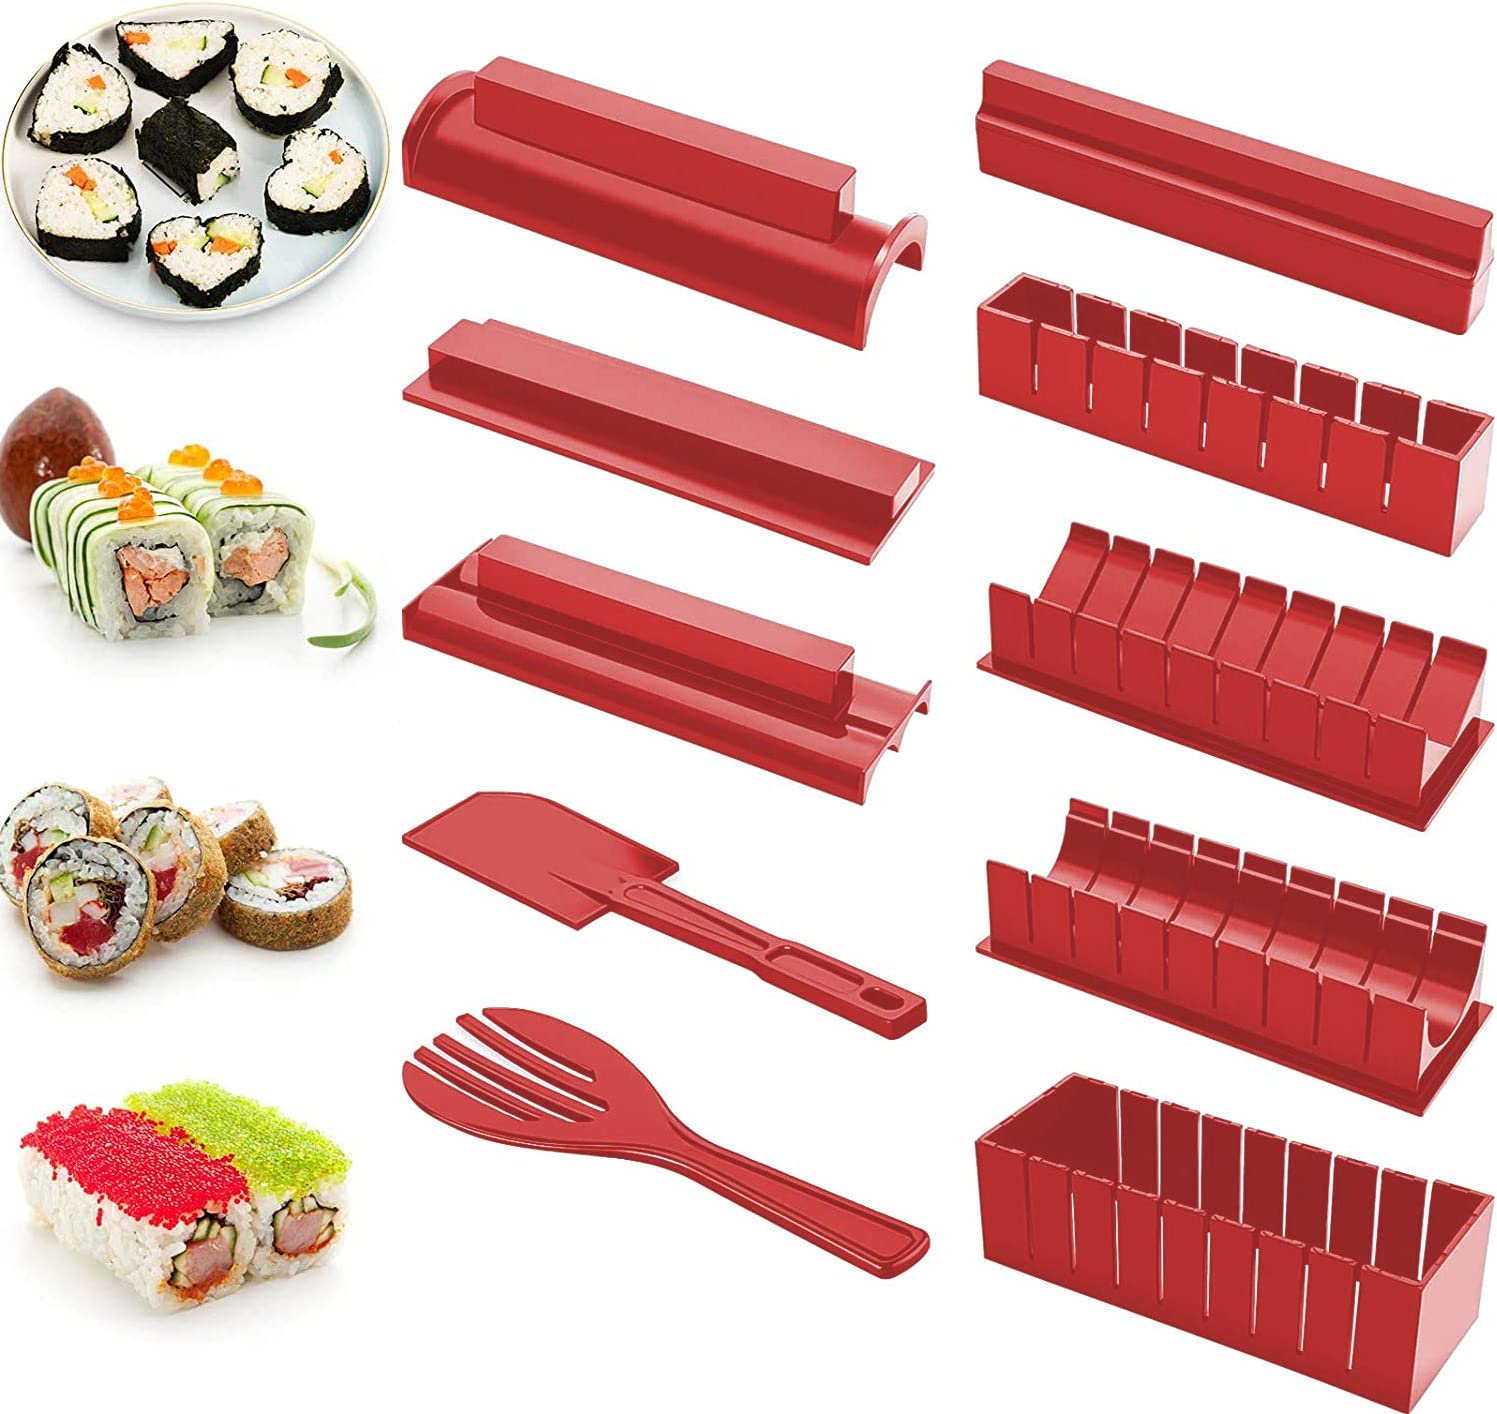 Sushi Making Kit Red Beginners 10 Pieces Plastic Sushi Maker Tool Complete with 8 Sushi Rice Roll Mould Shapes for Kitchen DIY Easy To Use